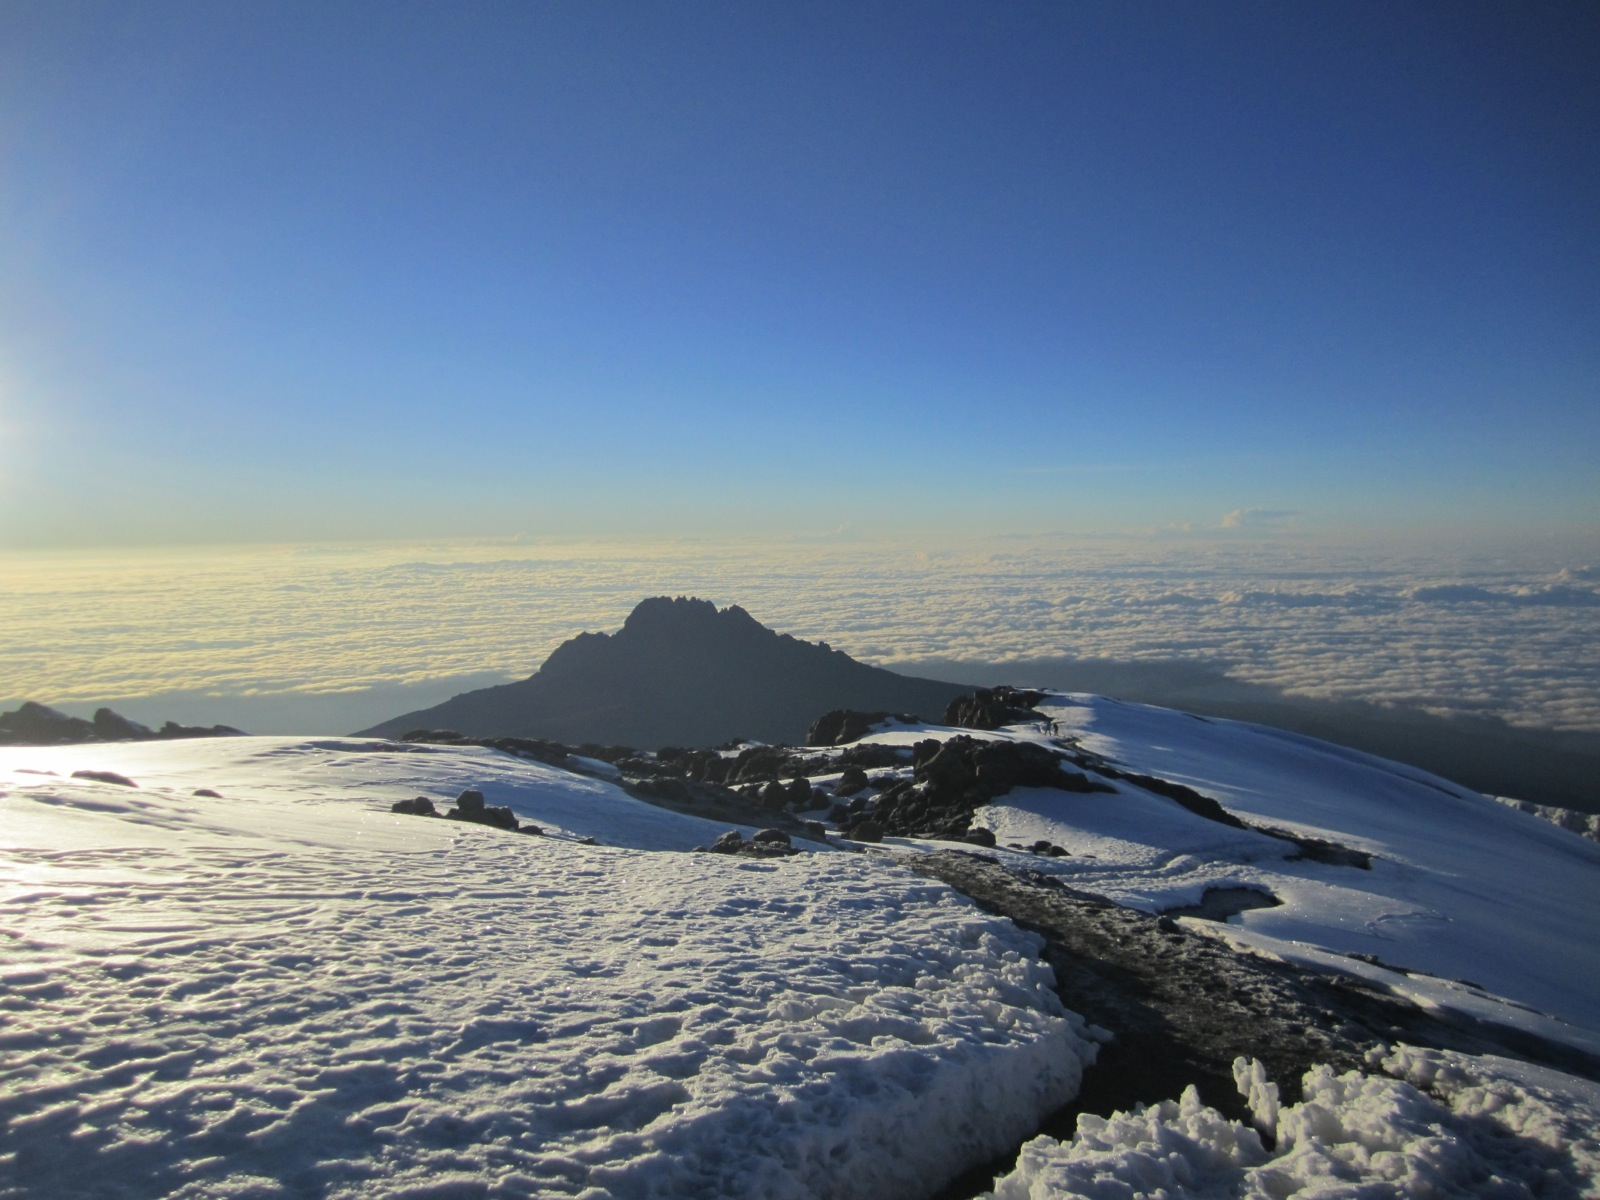 A rocky, snowy landscape in the foreground with a view out over the clouds from the summit of Mt. Kilimanjaro.